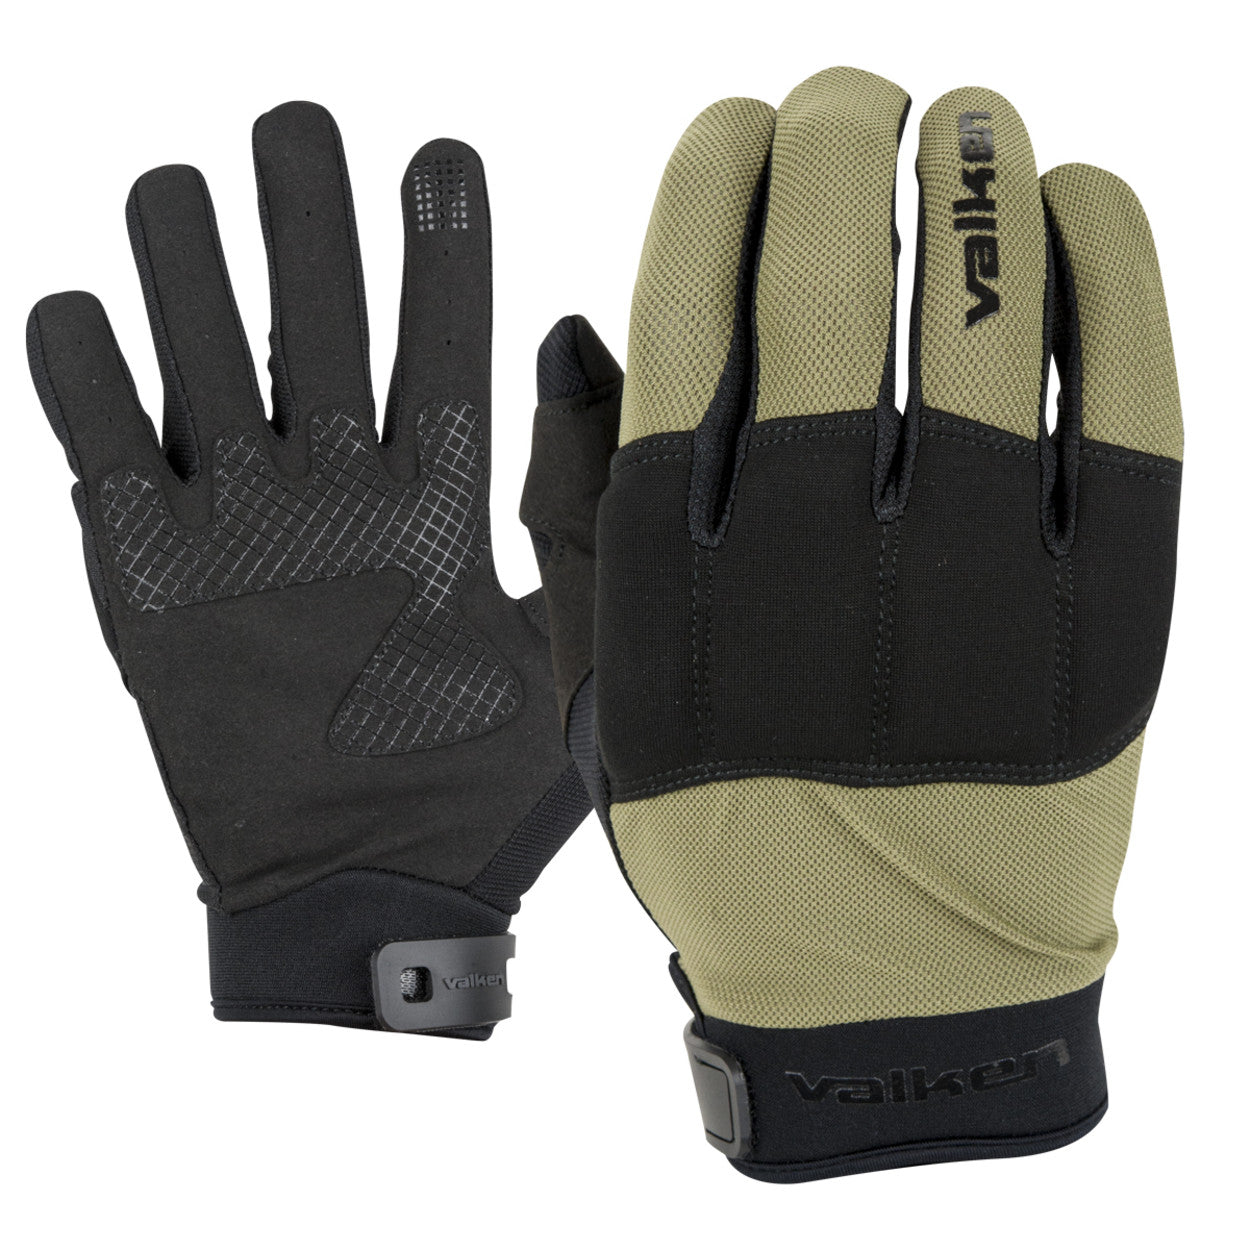 Valken Kilo Tactical Gloves - Olive